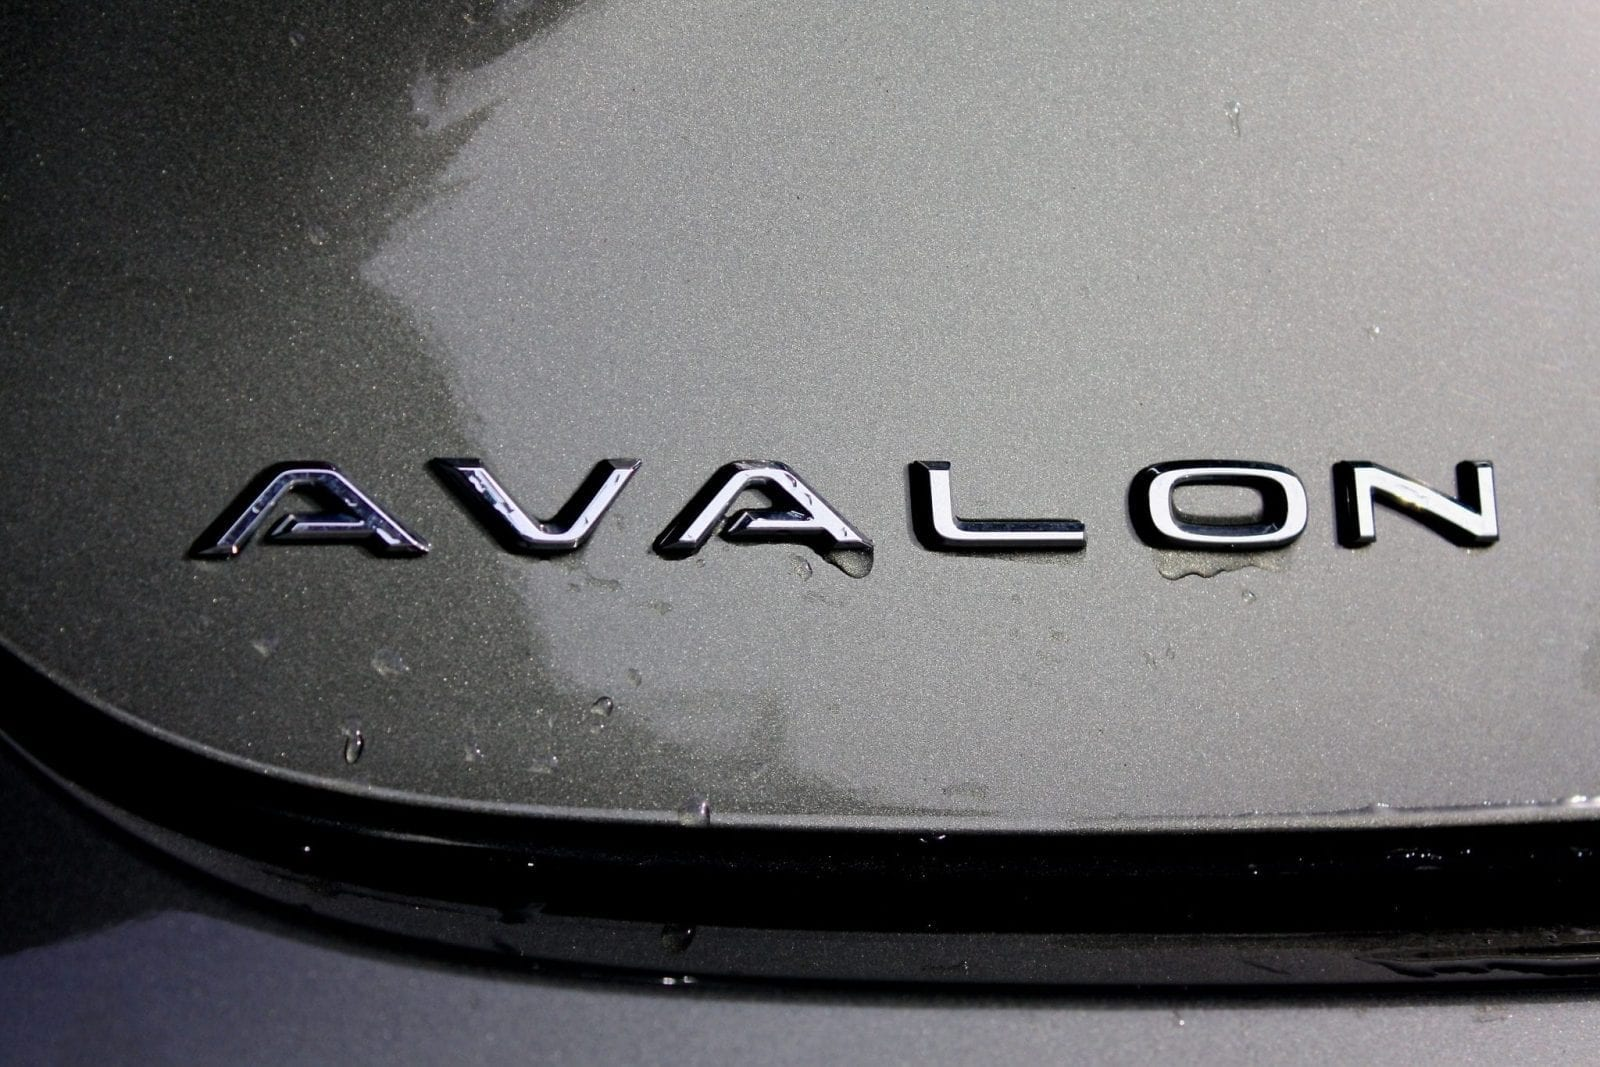 Avalon badge